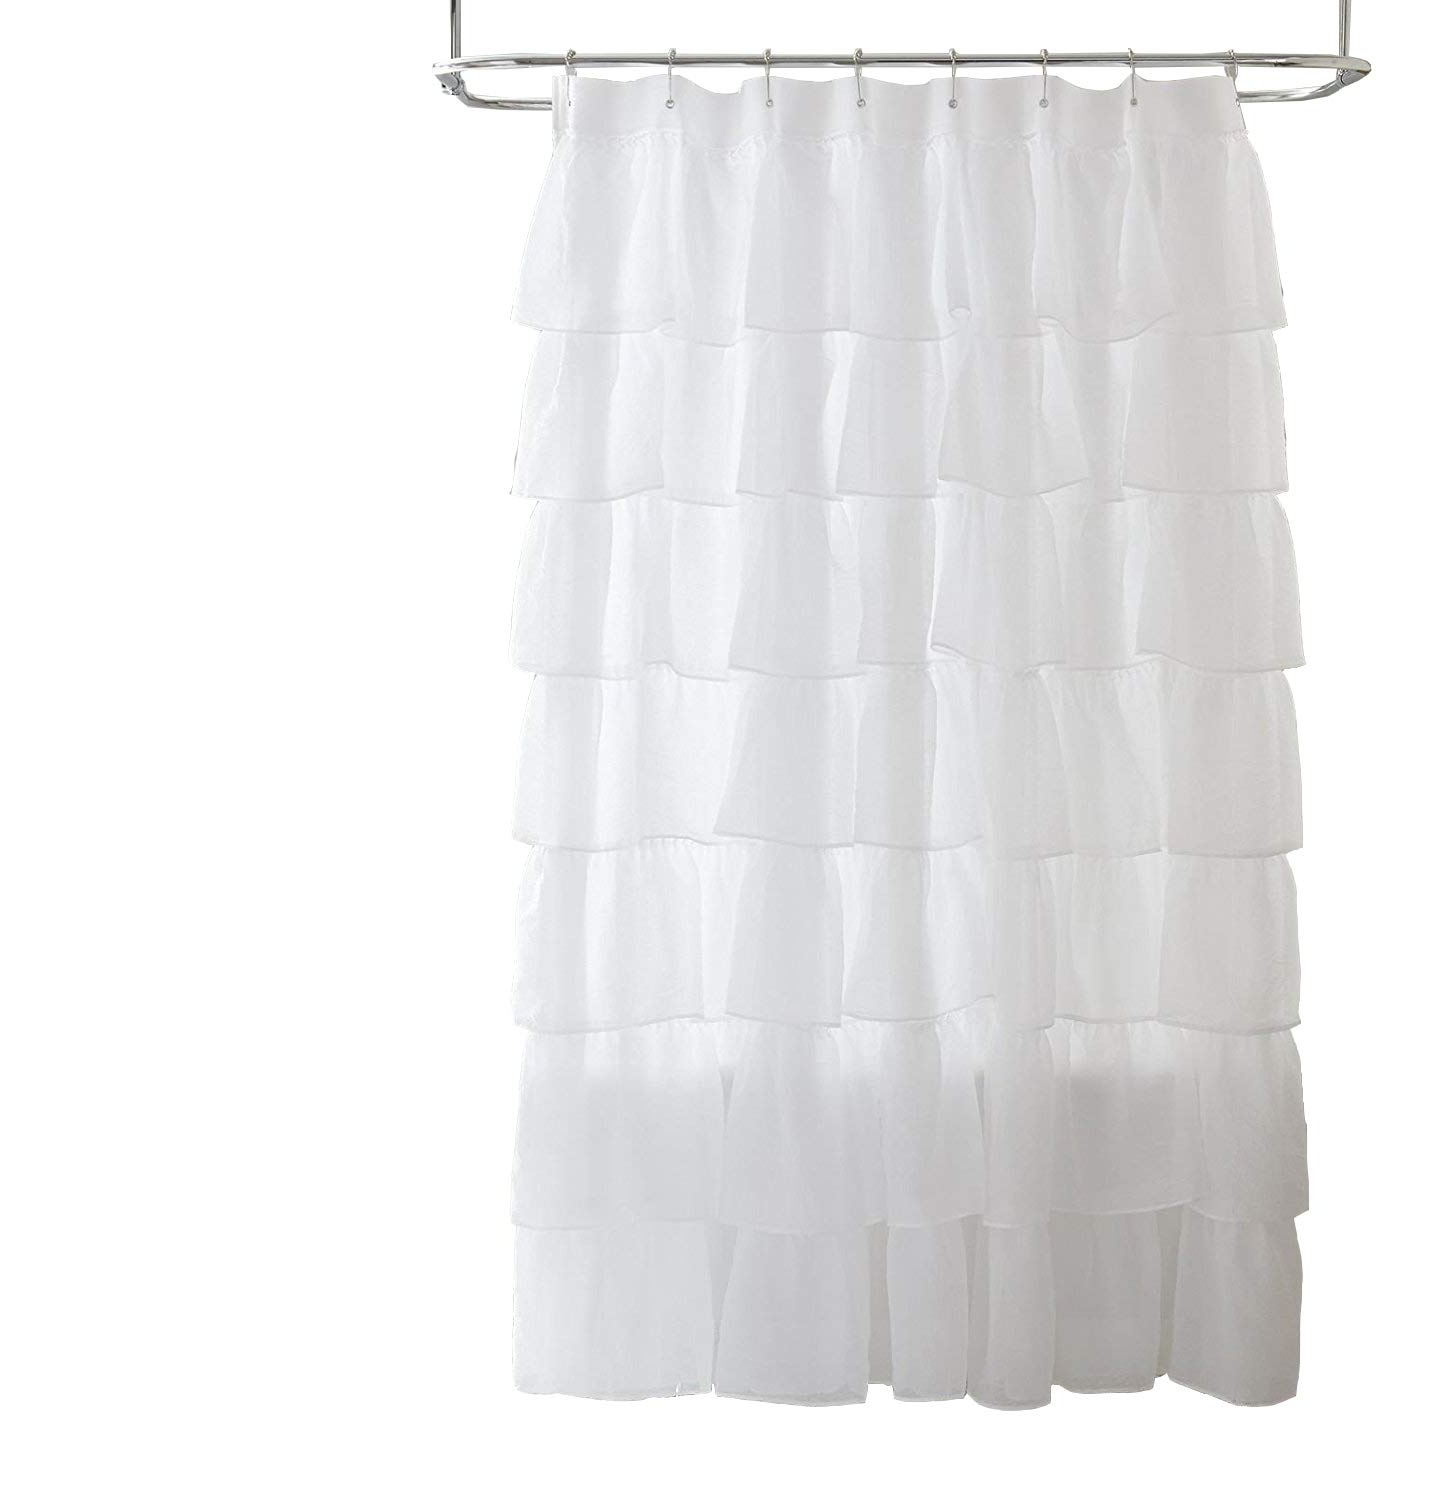 Best And Newest Elegant Crushed Voile Ruffle Window Curtain Pieces With Chezmoi Collection Crushed Voile Sheer Shabby Chic Ruffle Shower Curtain With Rings (white) (View 13 of 20)